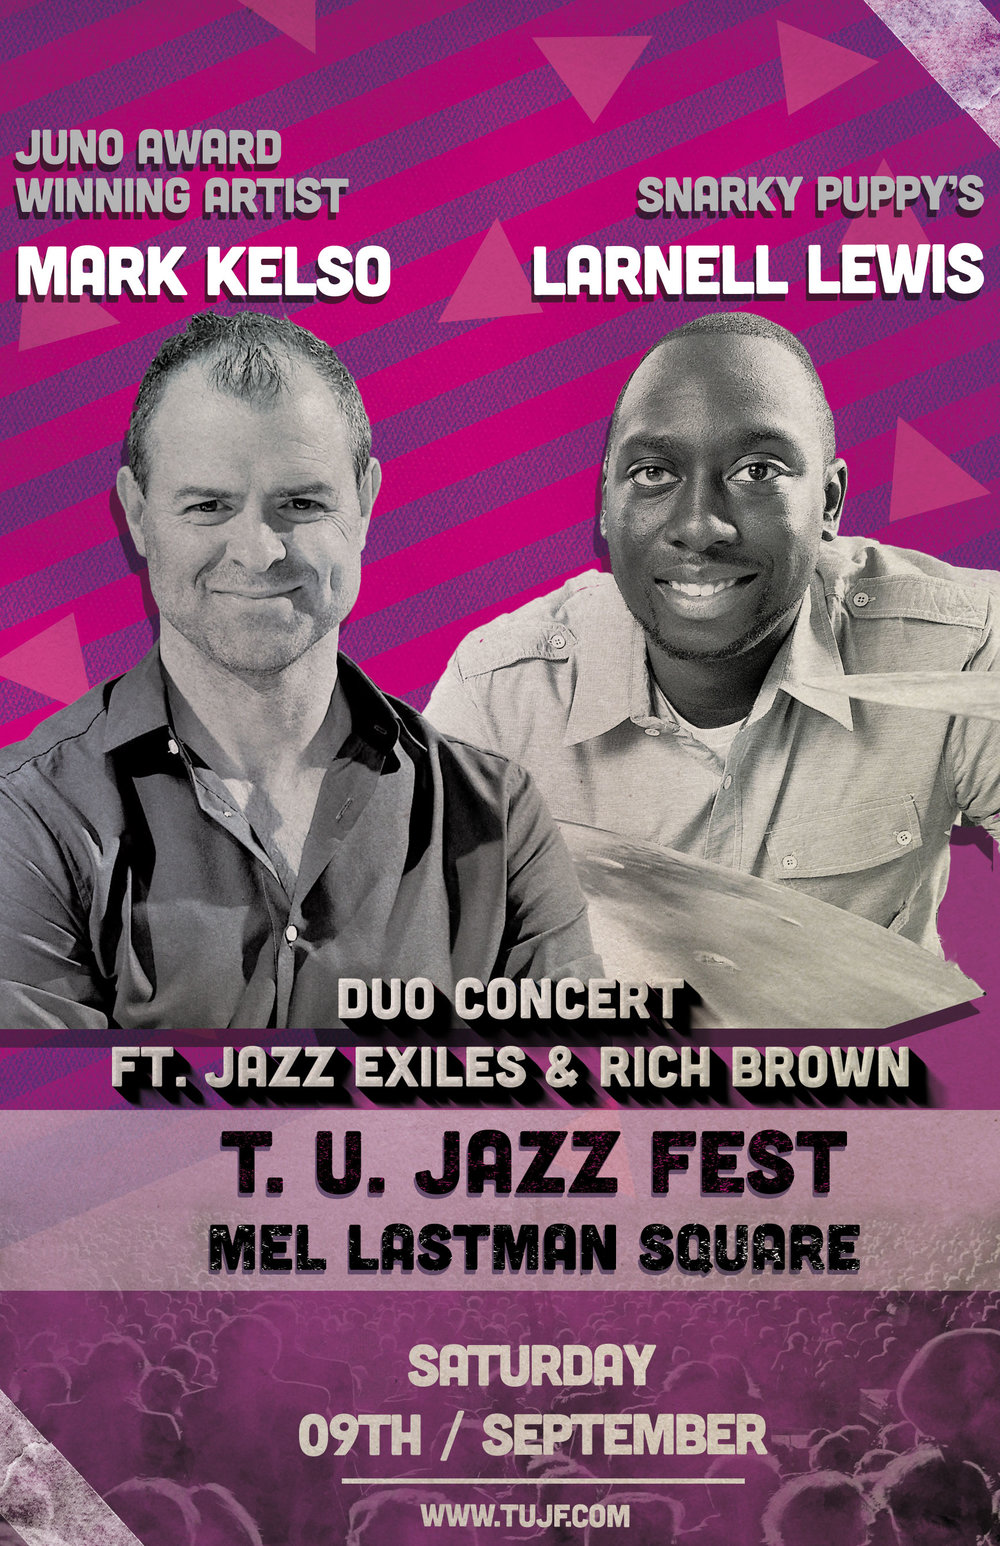 Mark Kelso and Larnell Lewis